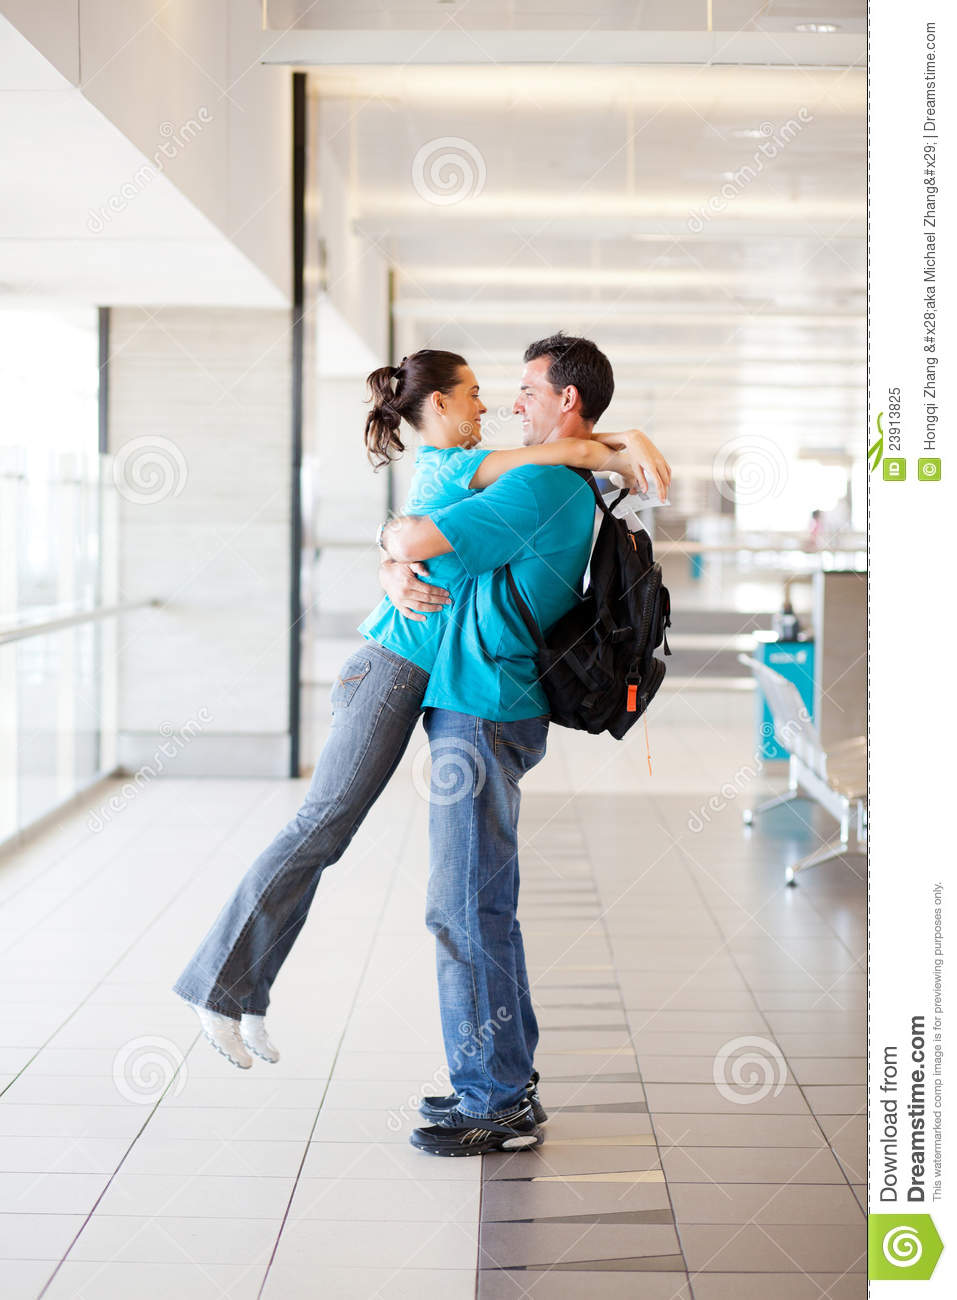 Couple Hugging At Airport Royalty Free Stock Photo - Image ...